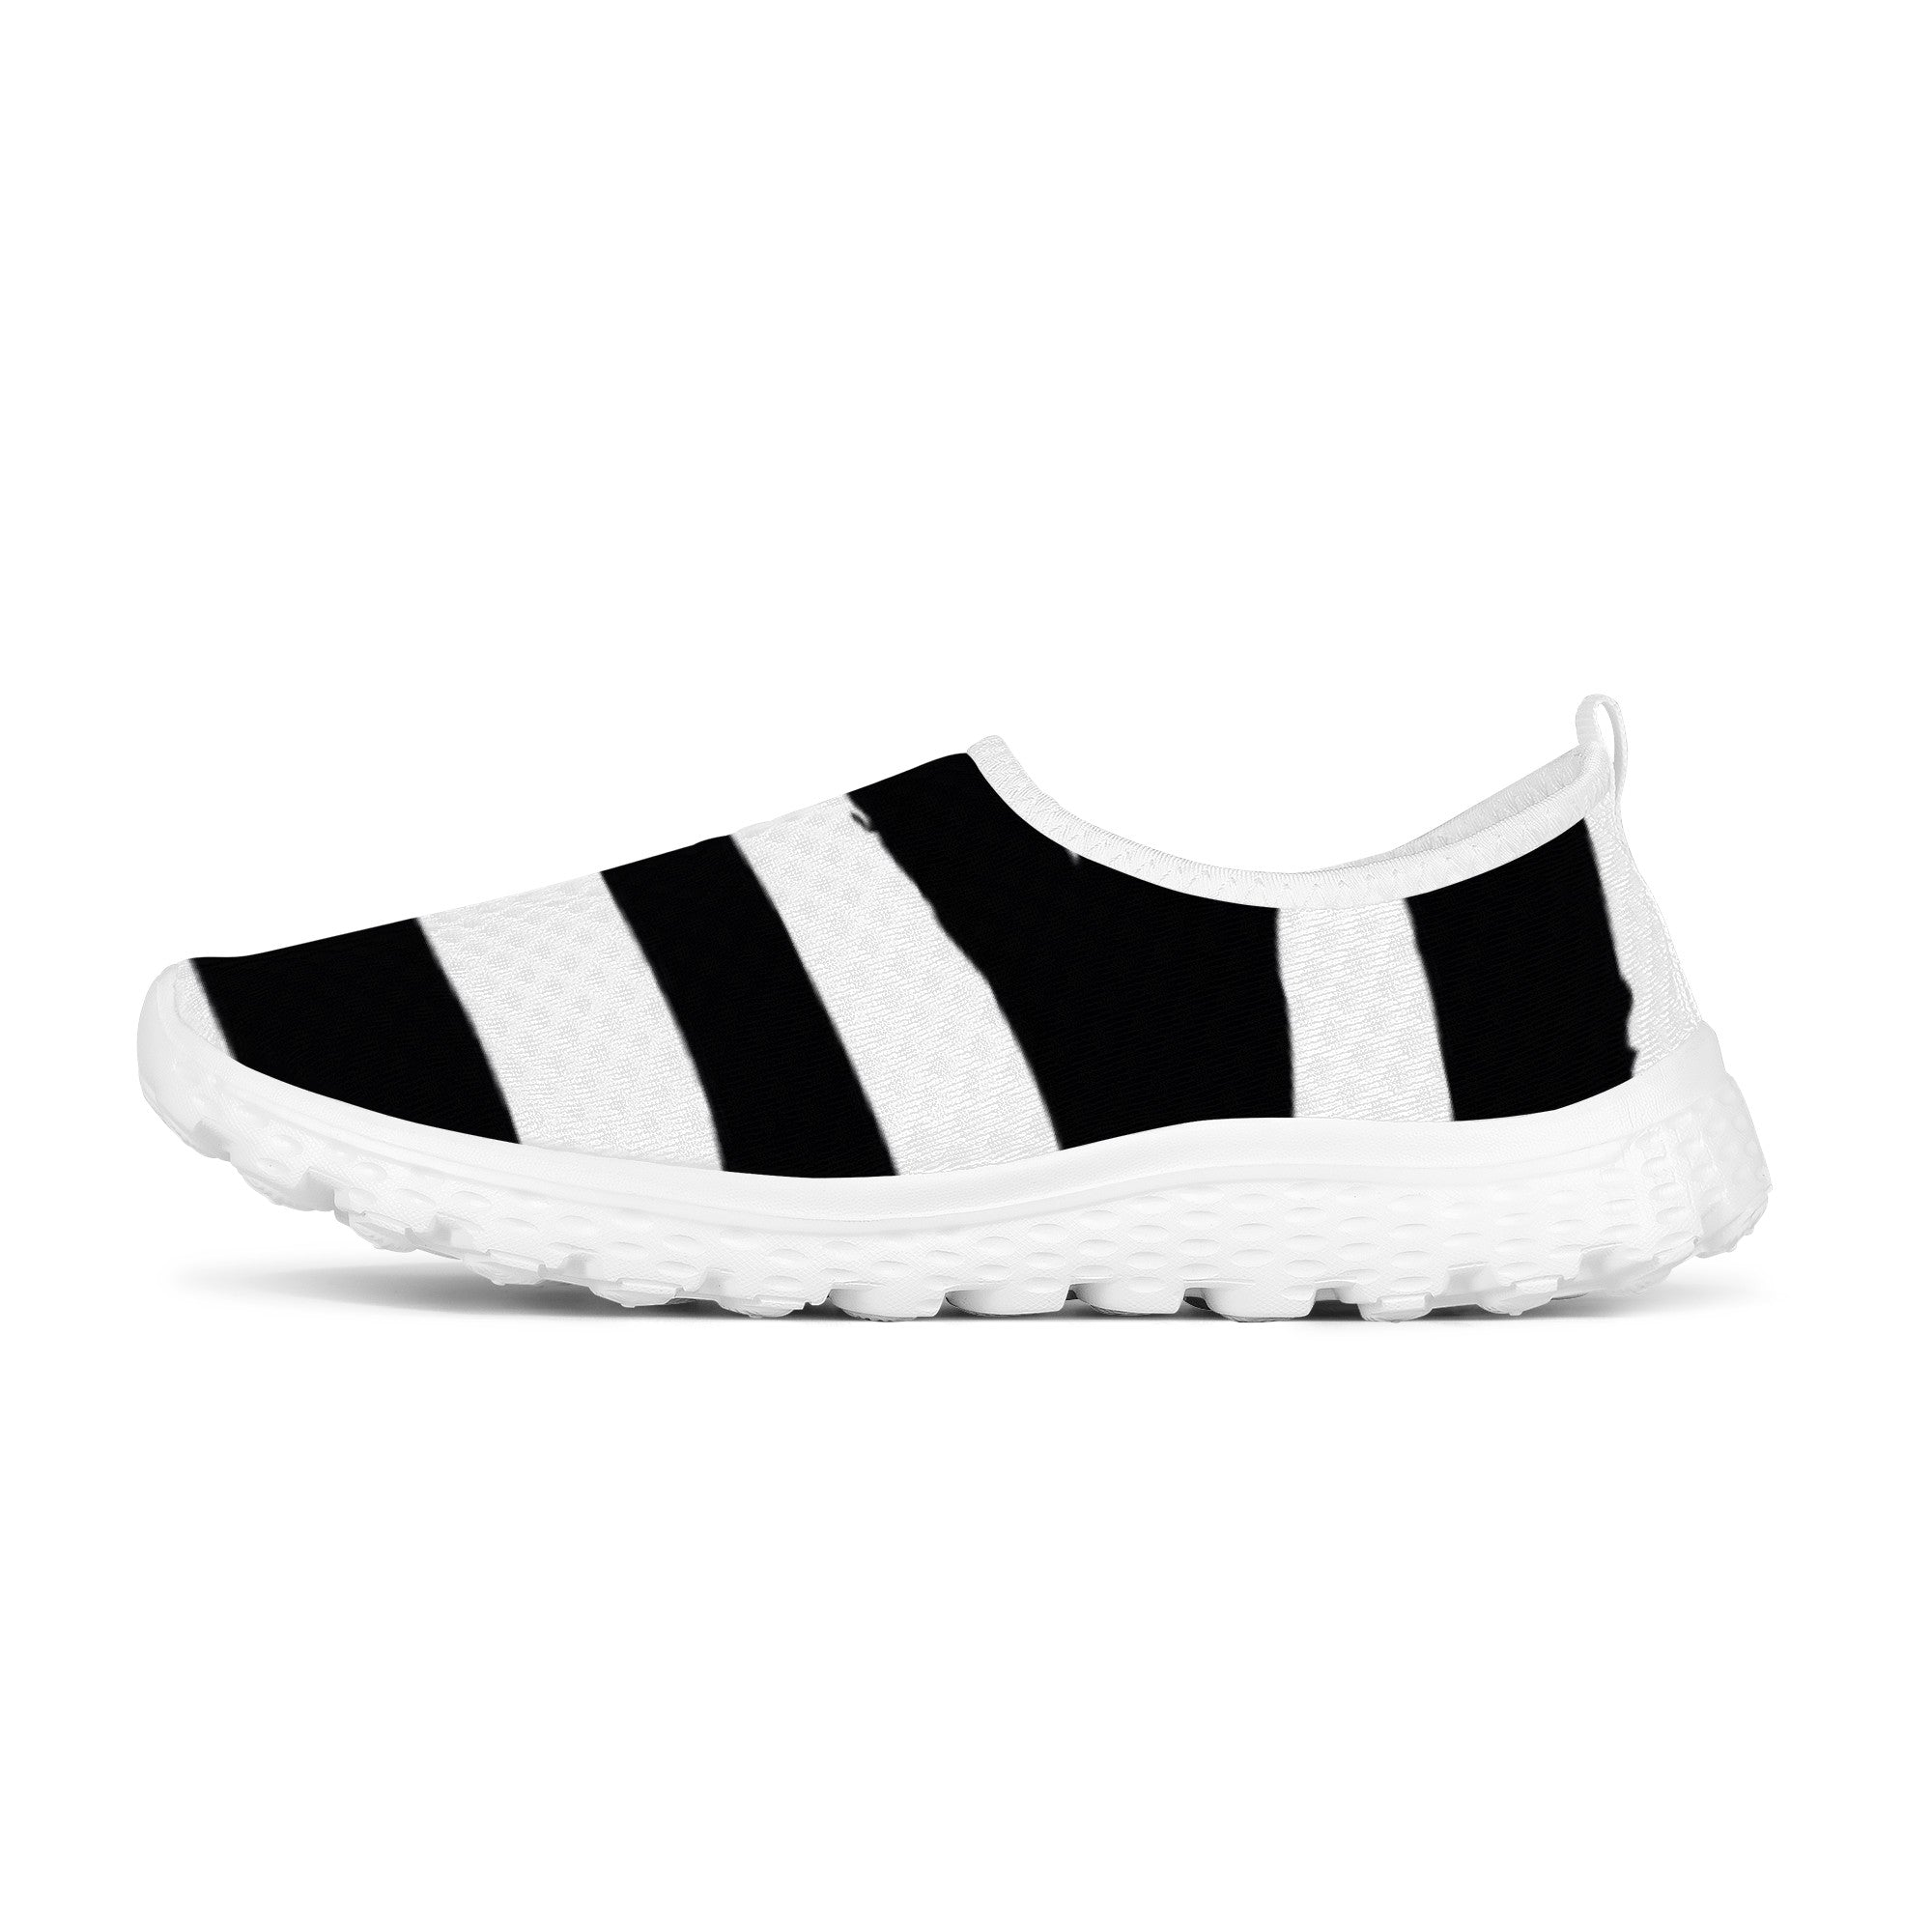 SF_F6 Mesh Running Shoes Black and White HAPPIER FEELINGS